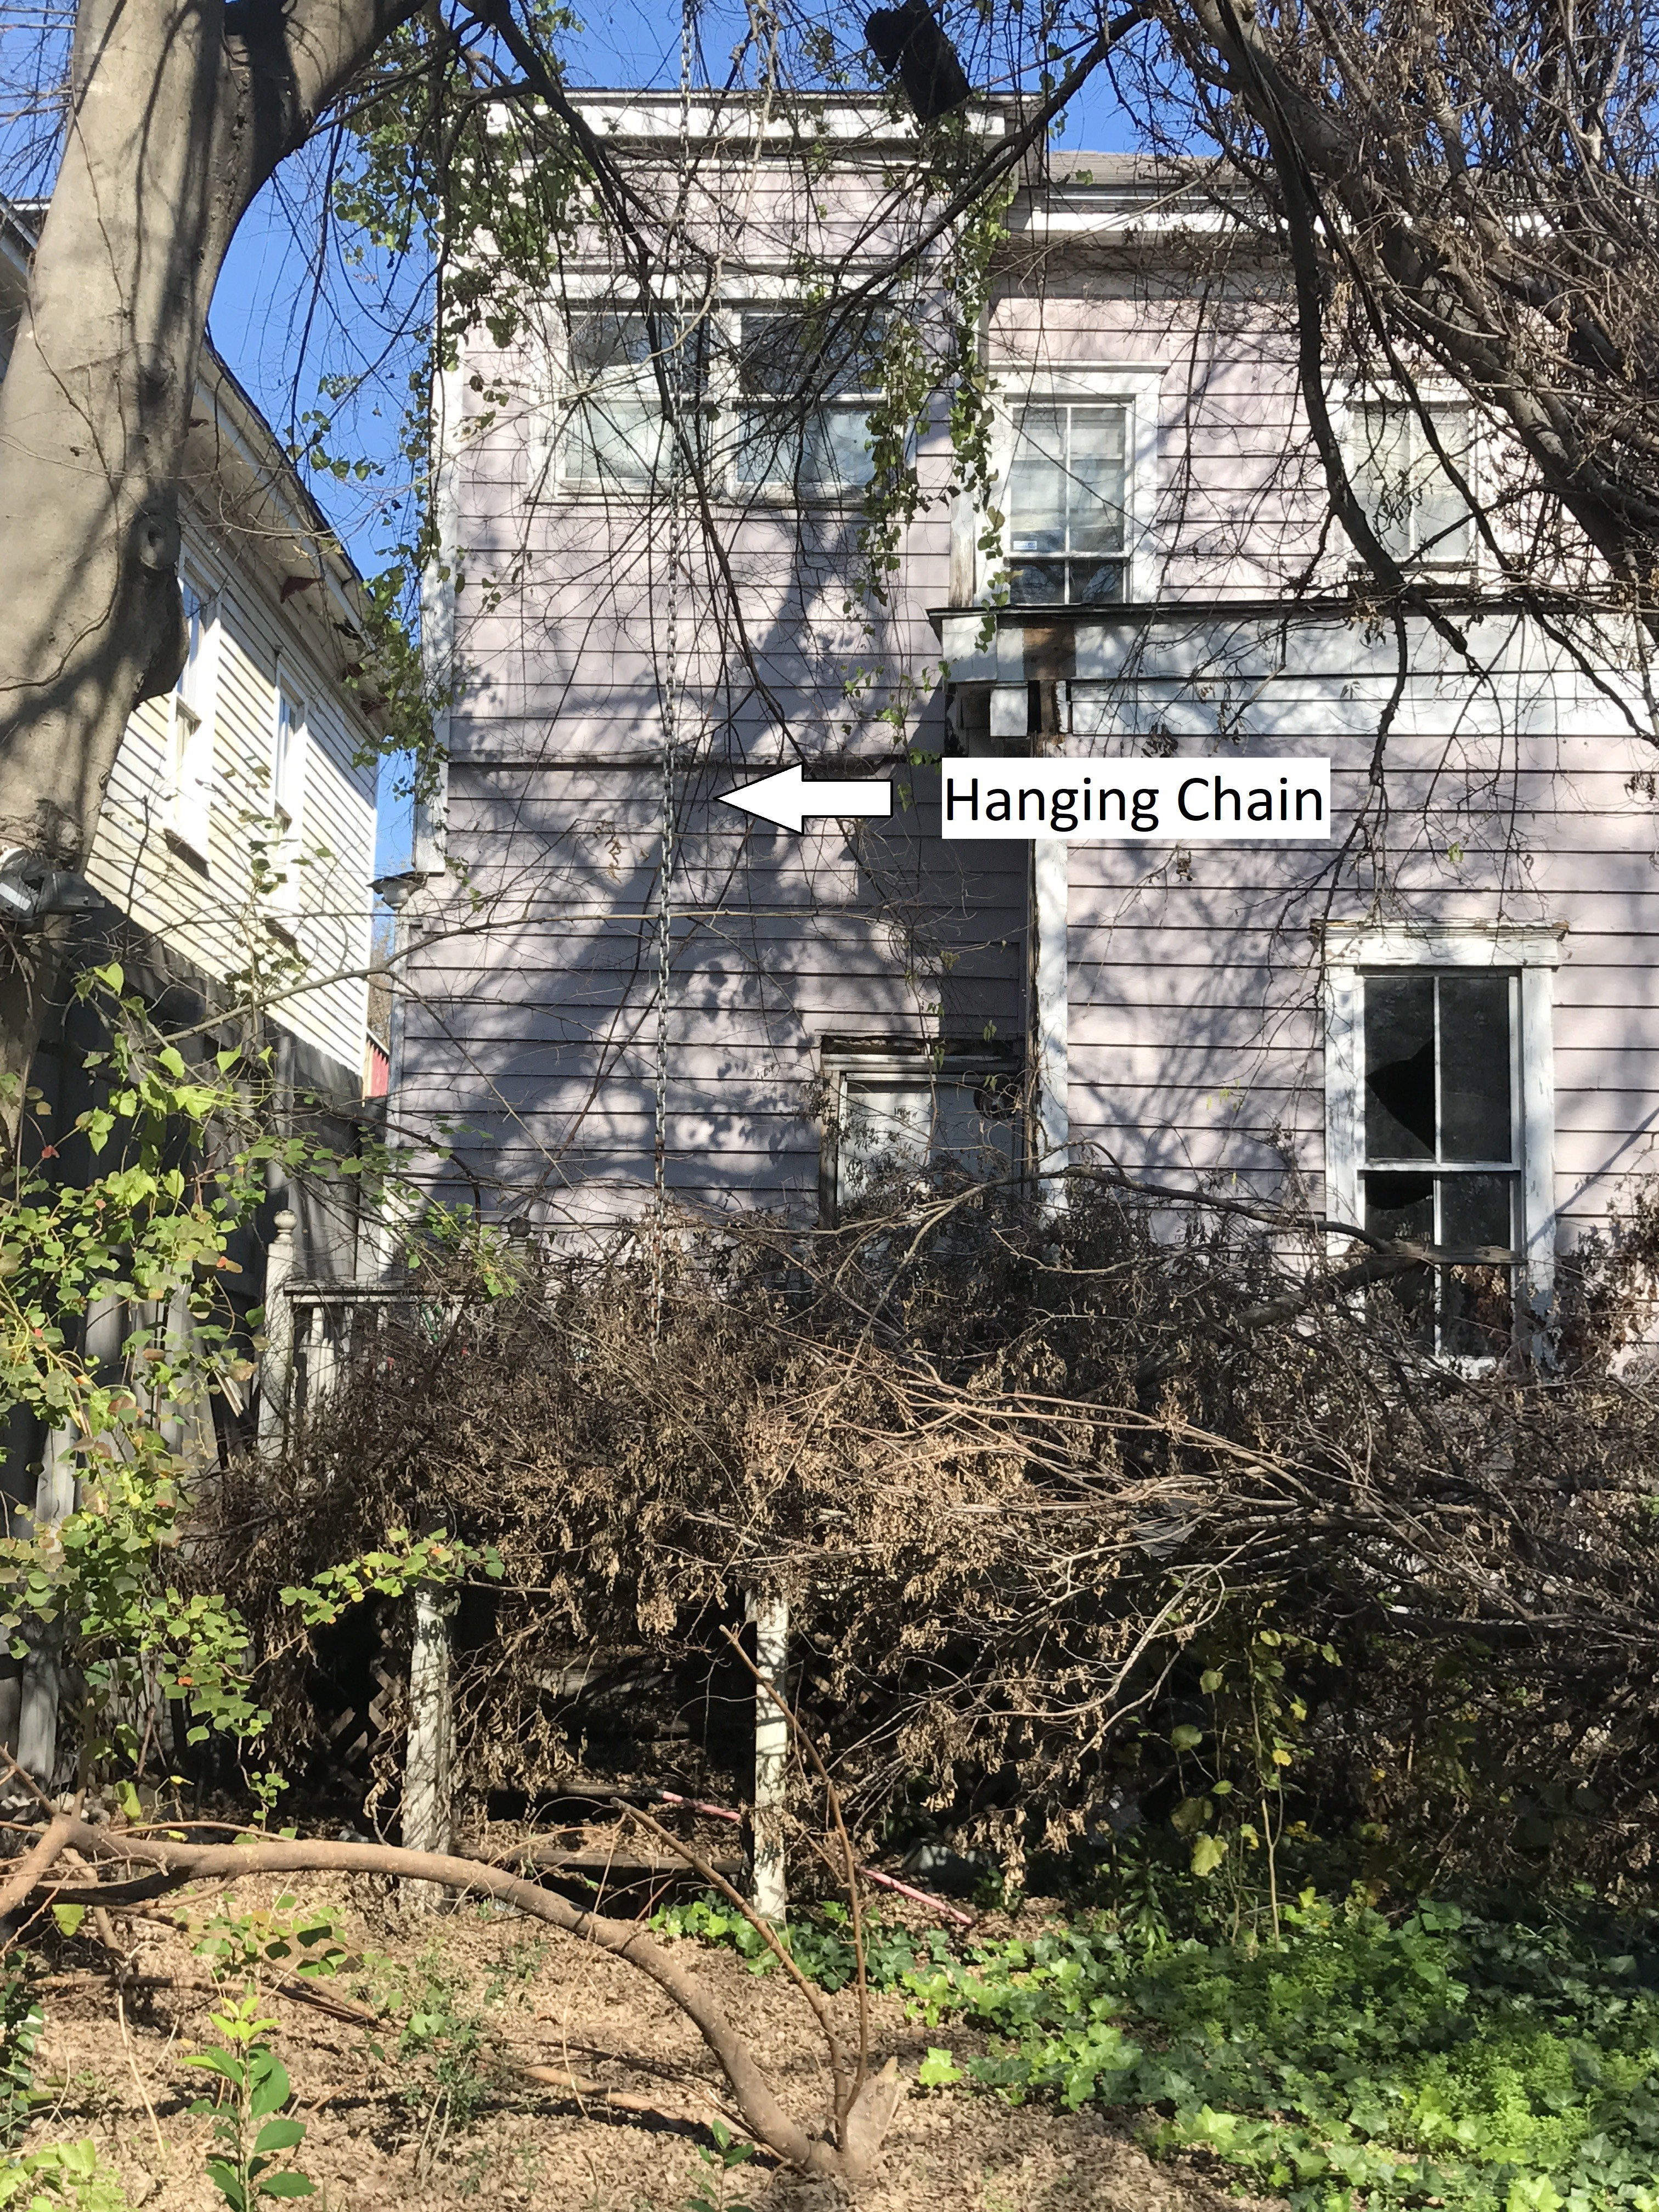 Overgrown backyard with chain hanging from tree